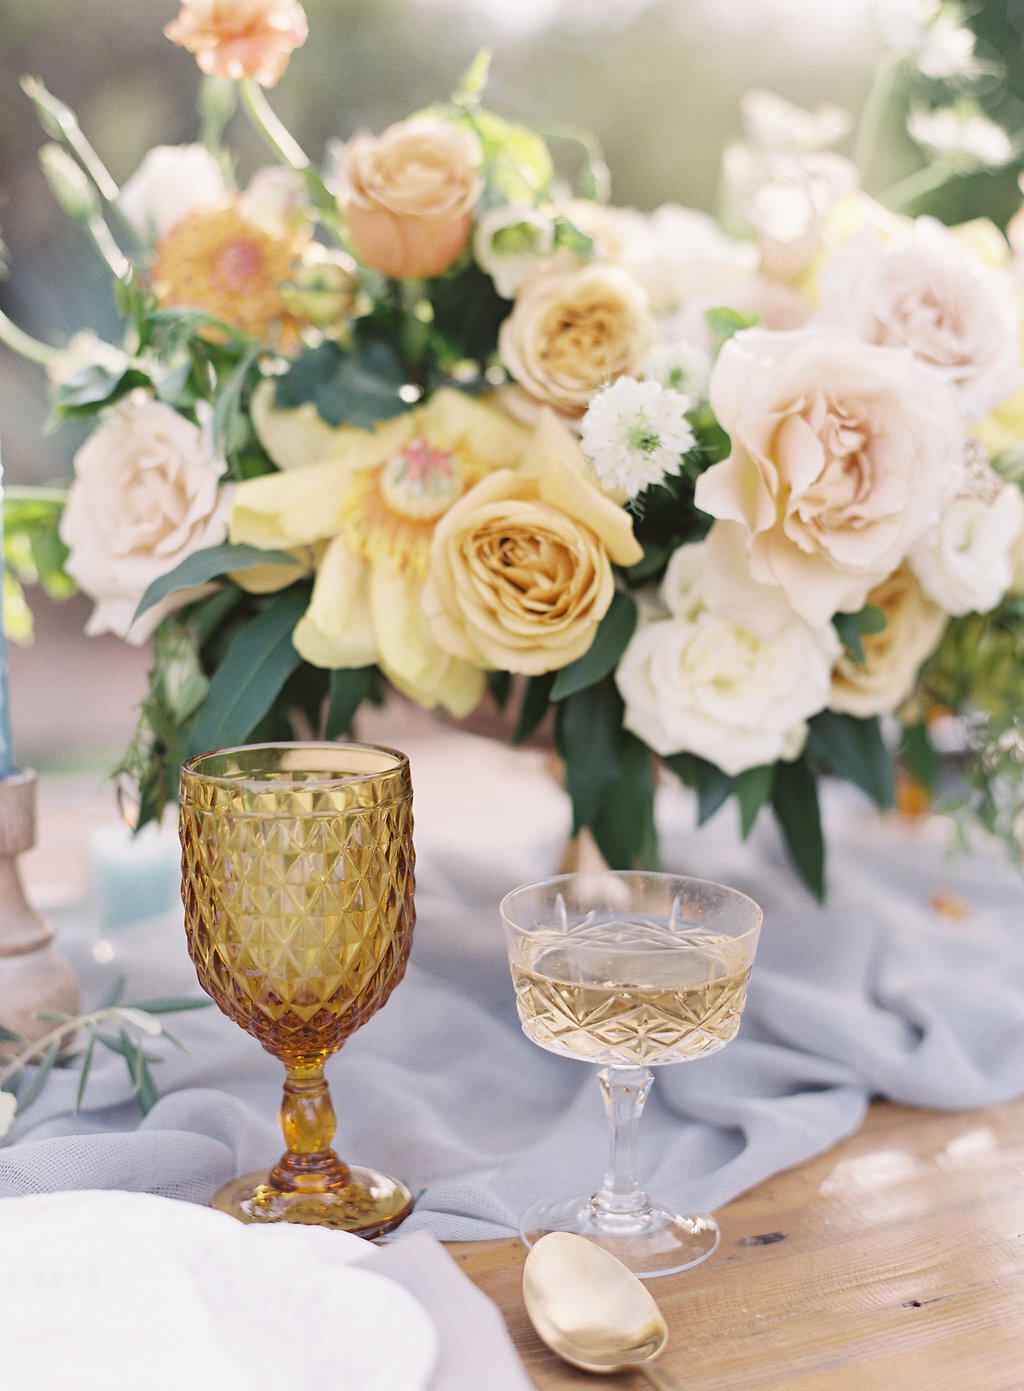 orange-and-yellow-wedding-centerpiece